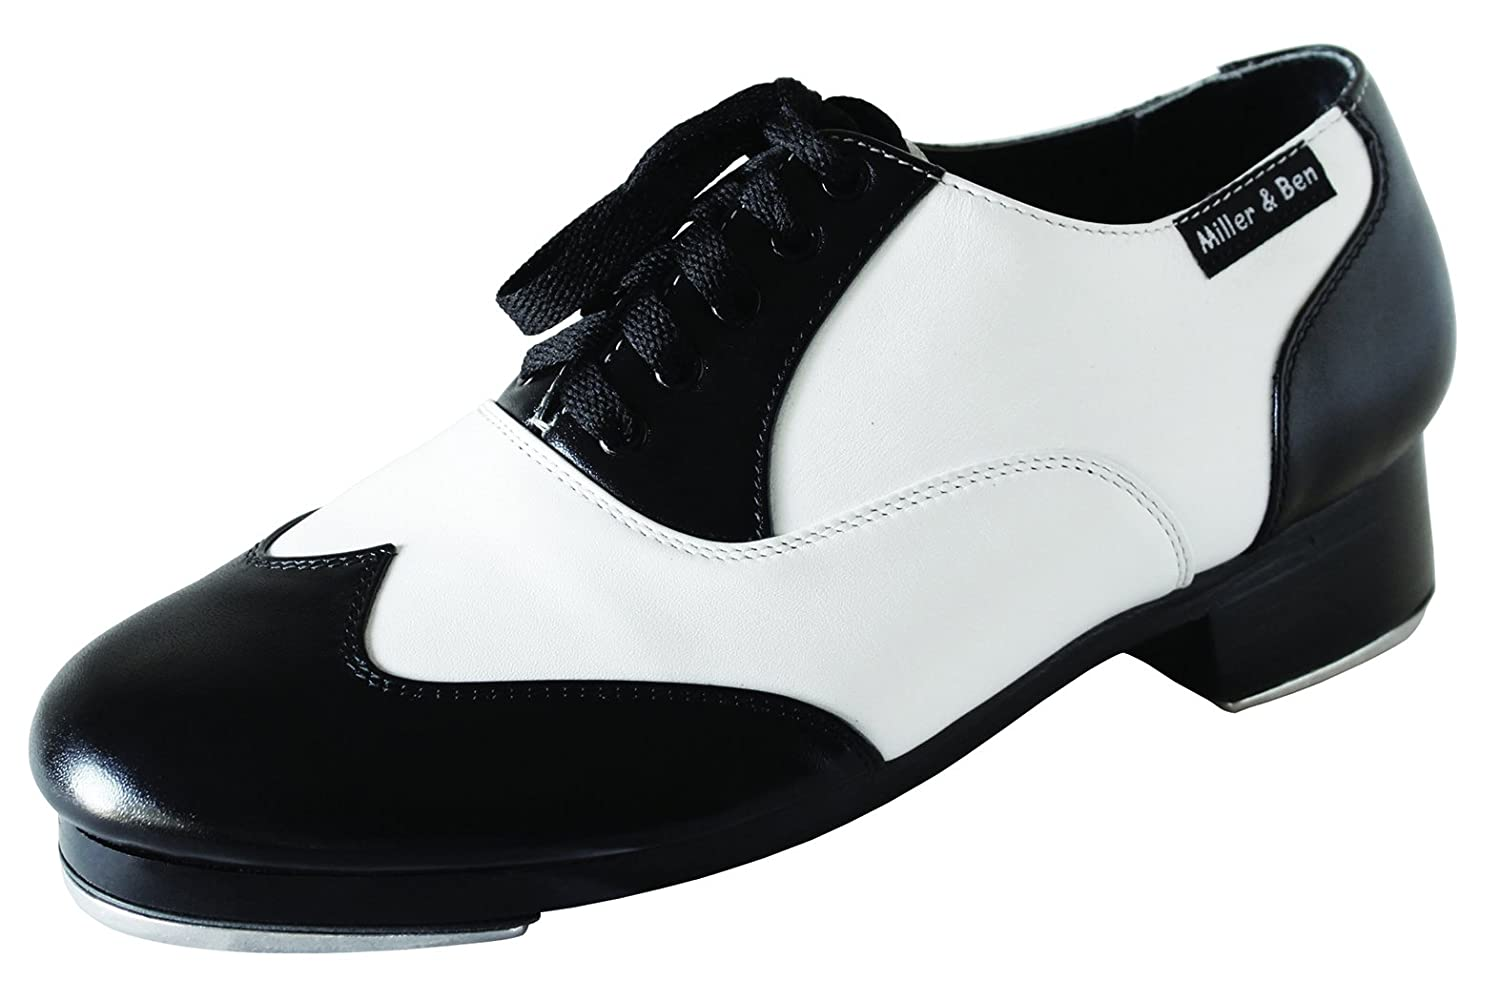 1930s Style Shoes – Art Deco Shoes Miller & Ben Tap Shoes Jazz-Tap Master Black & White - STANDARD SIZES $285.00 AT vintagedancer.com